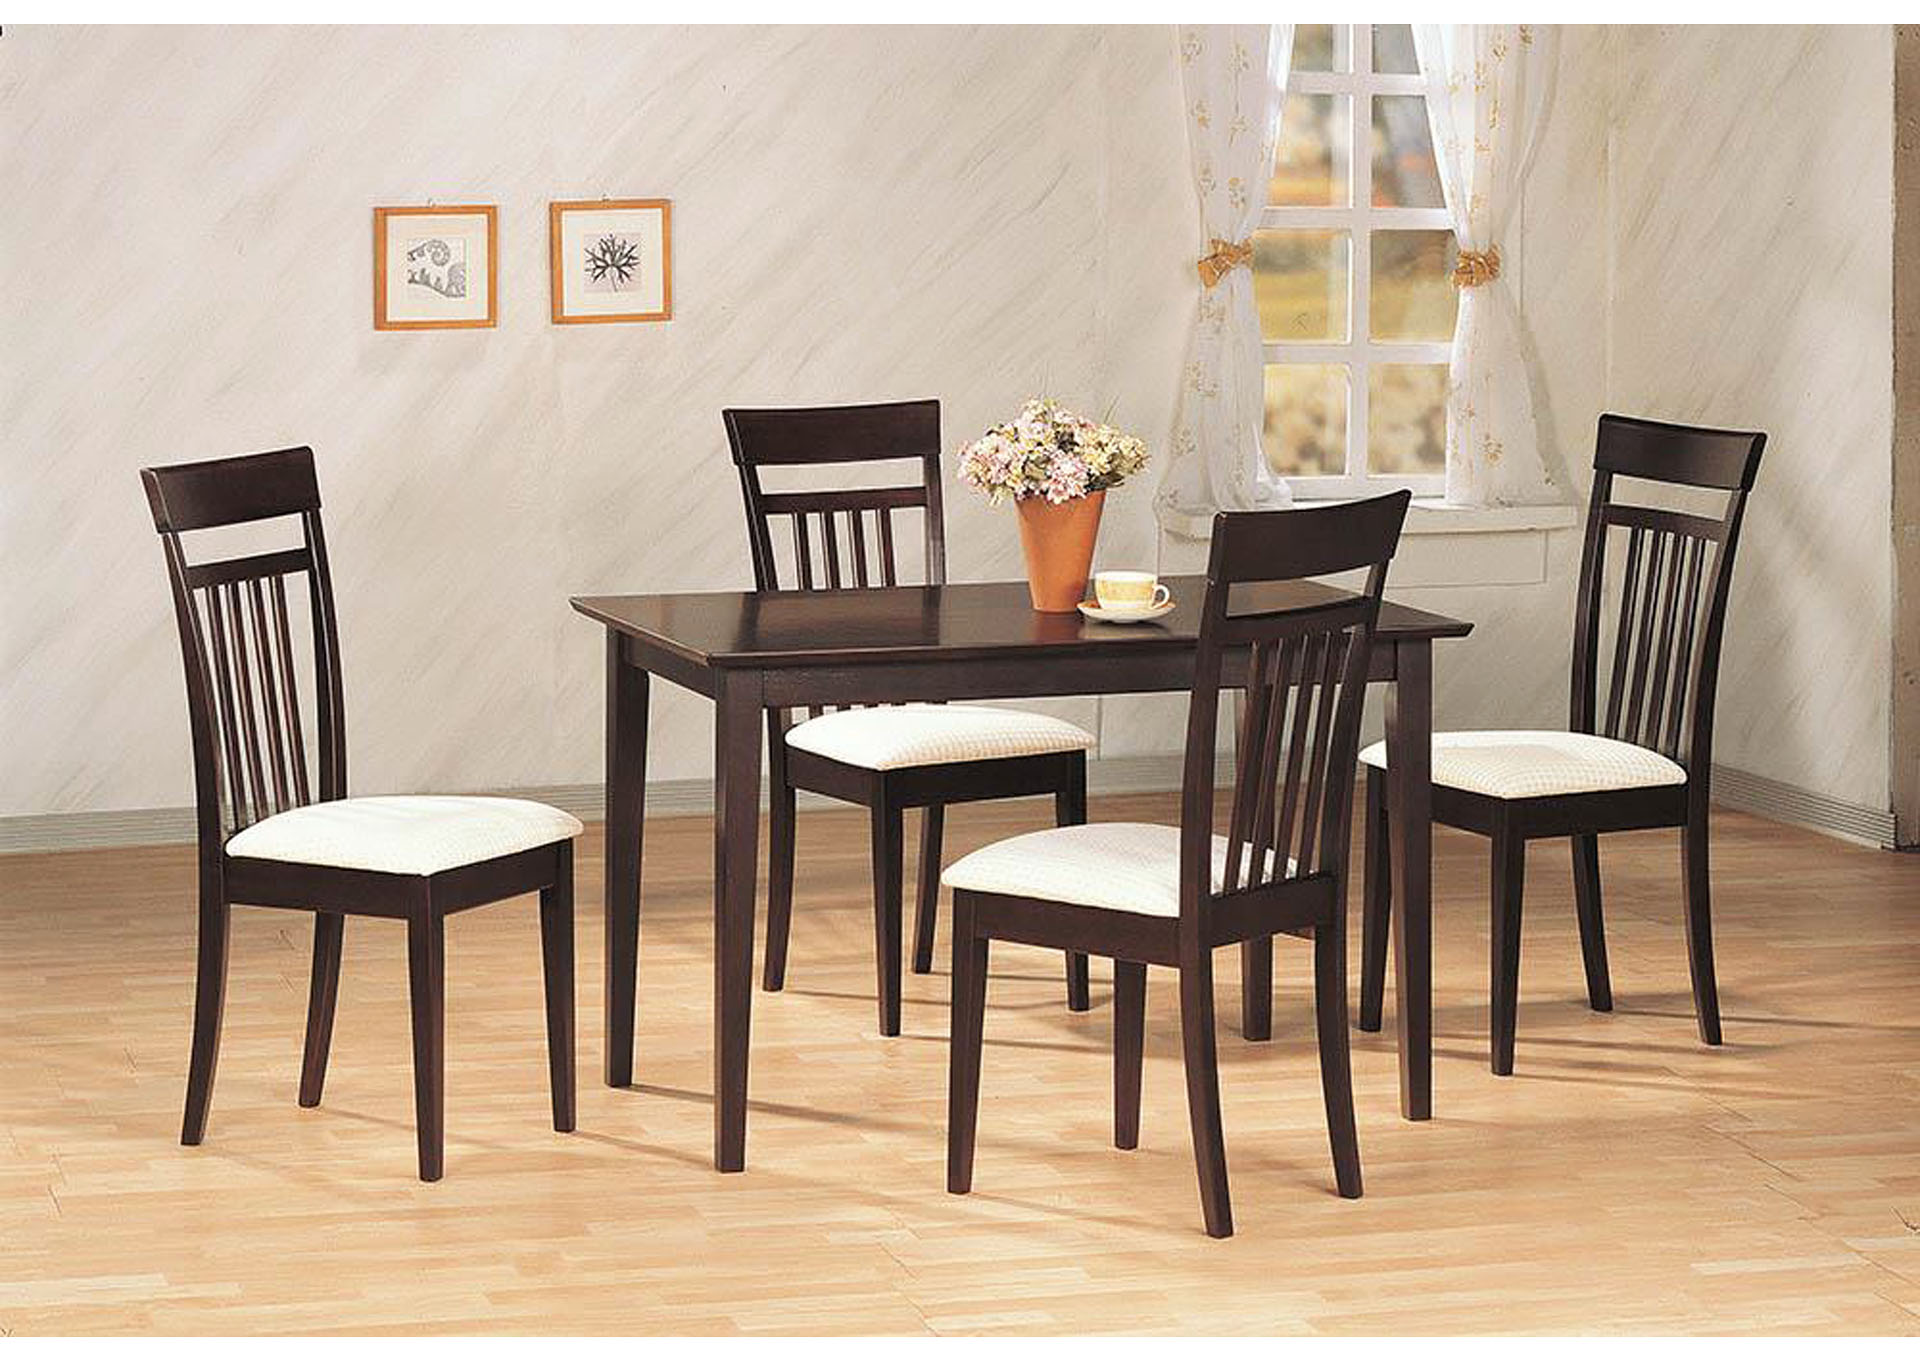 White & Cappuccino 5 Pc Dining Set,Coaster Furniture